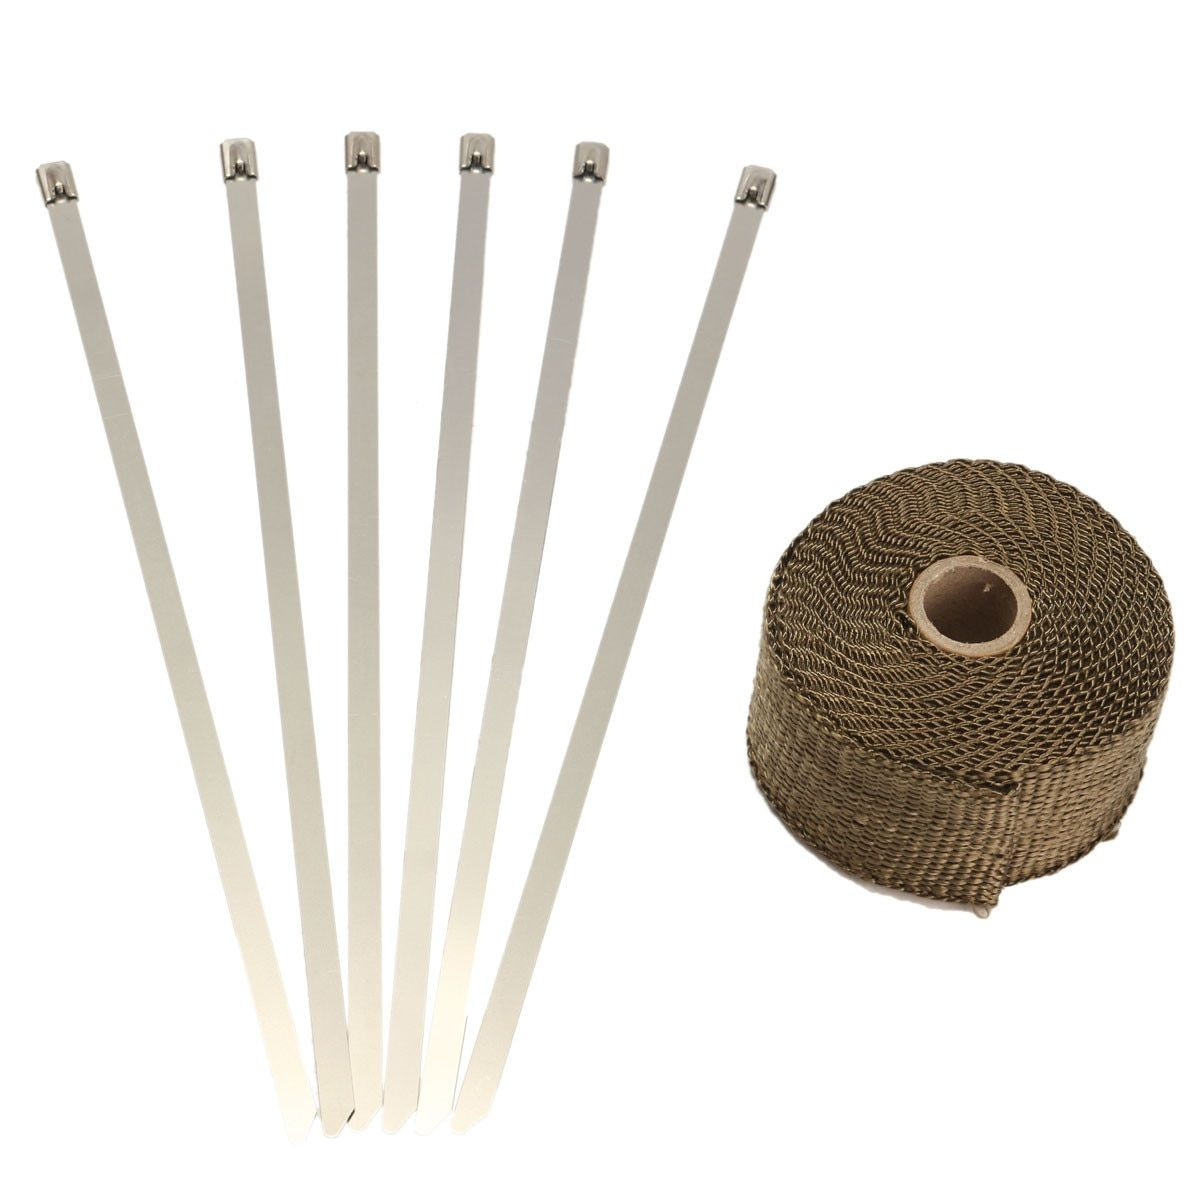 5.08cm x 1.59 mm x 5m Titanium Exhaust/Header Heat Wrap Downpipe Insulation Bandage Tape Roll With Stainless Ties Kit